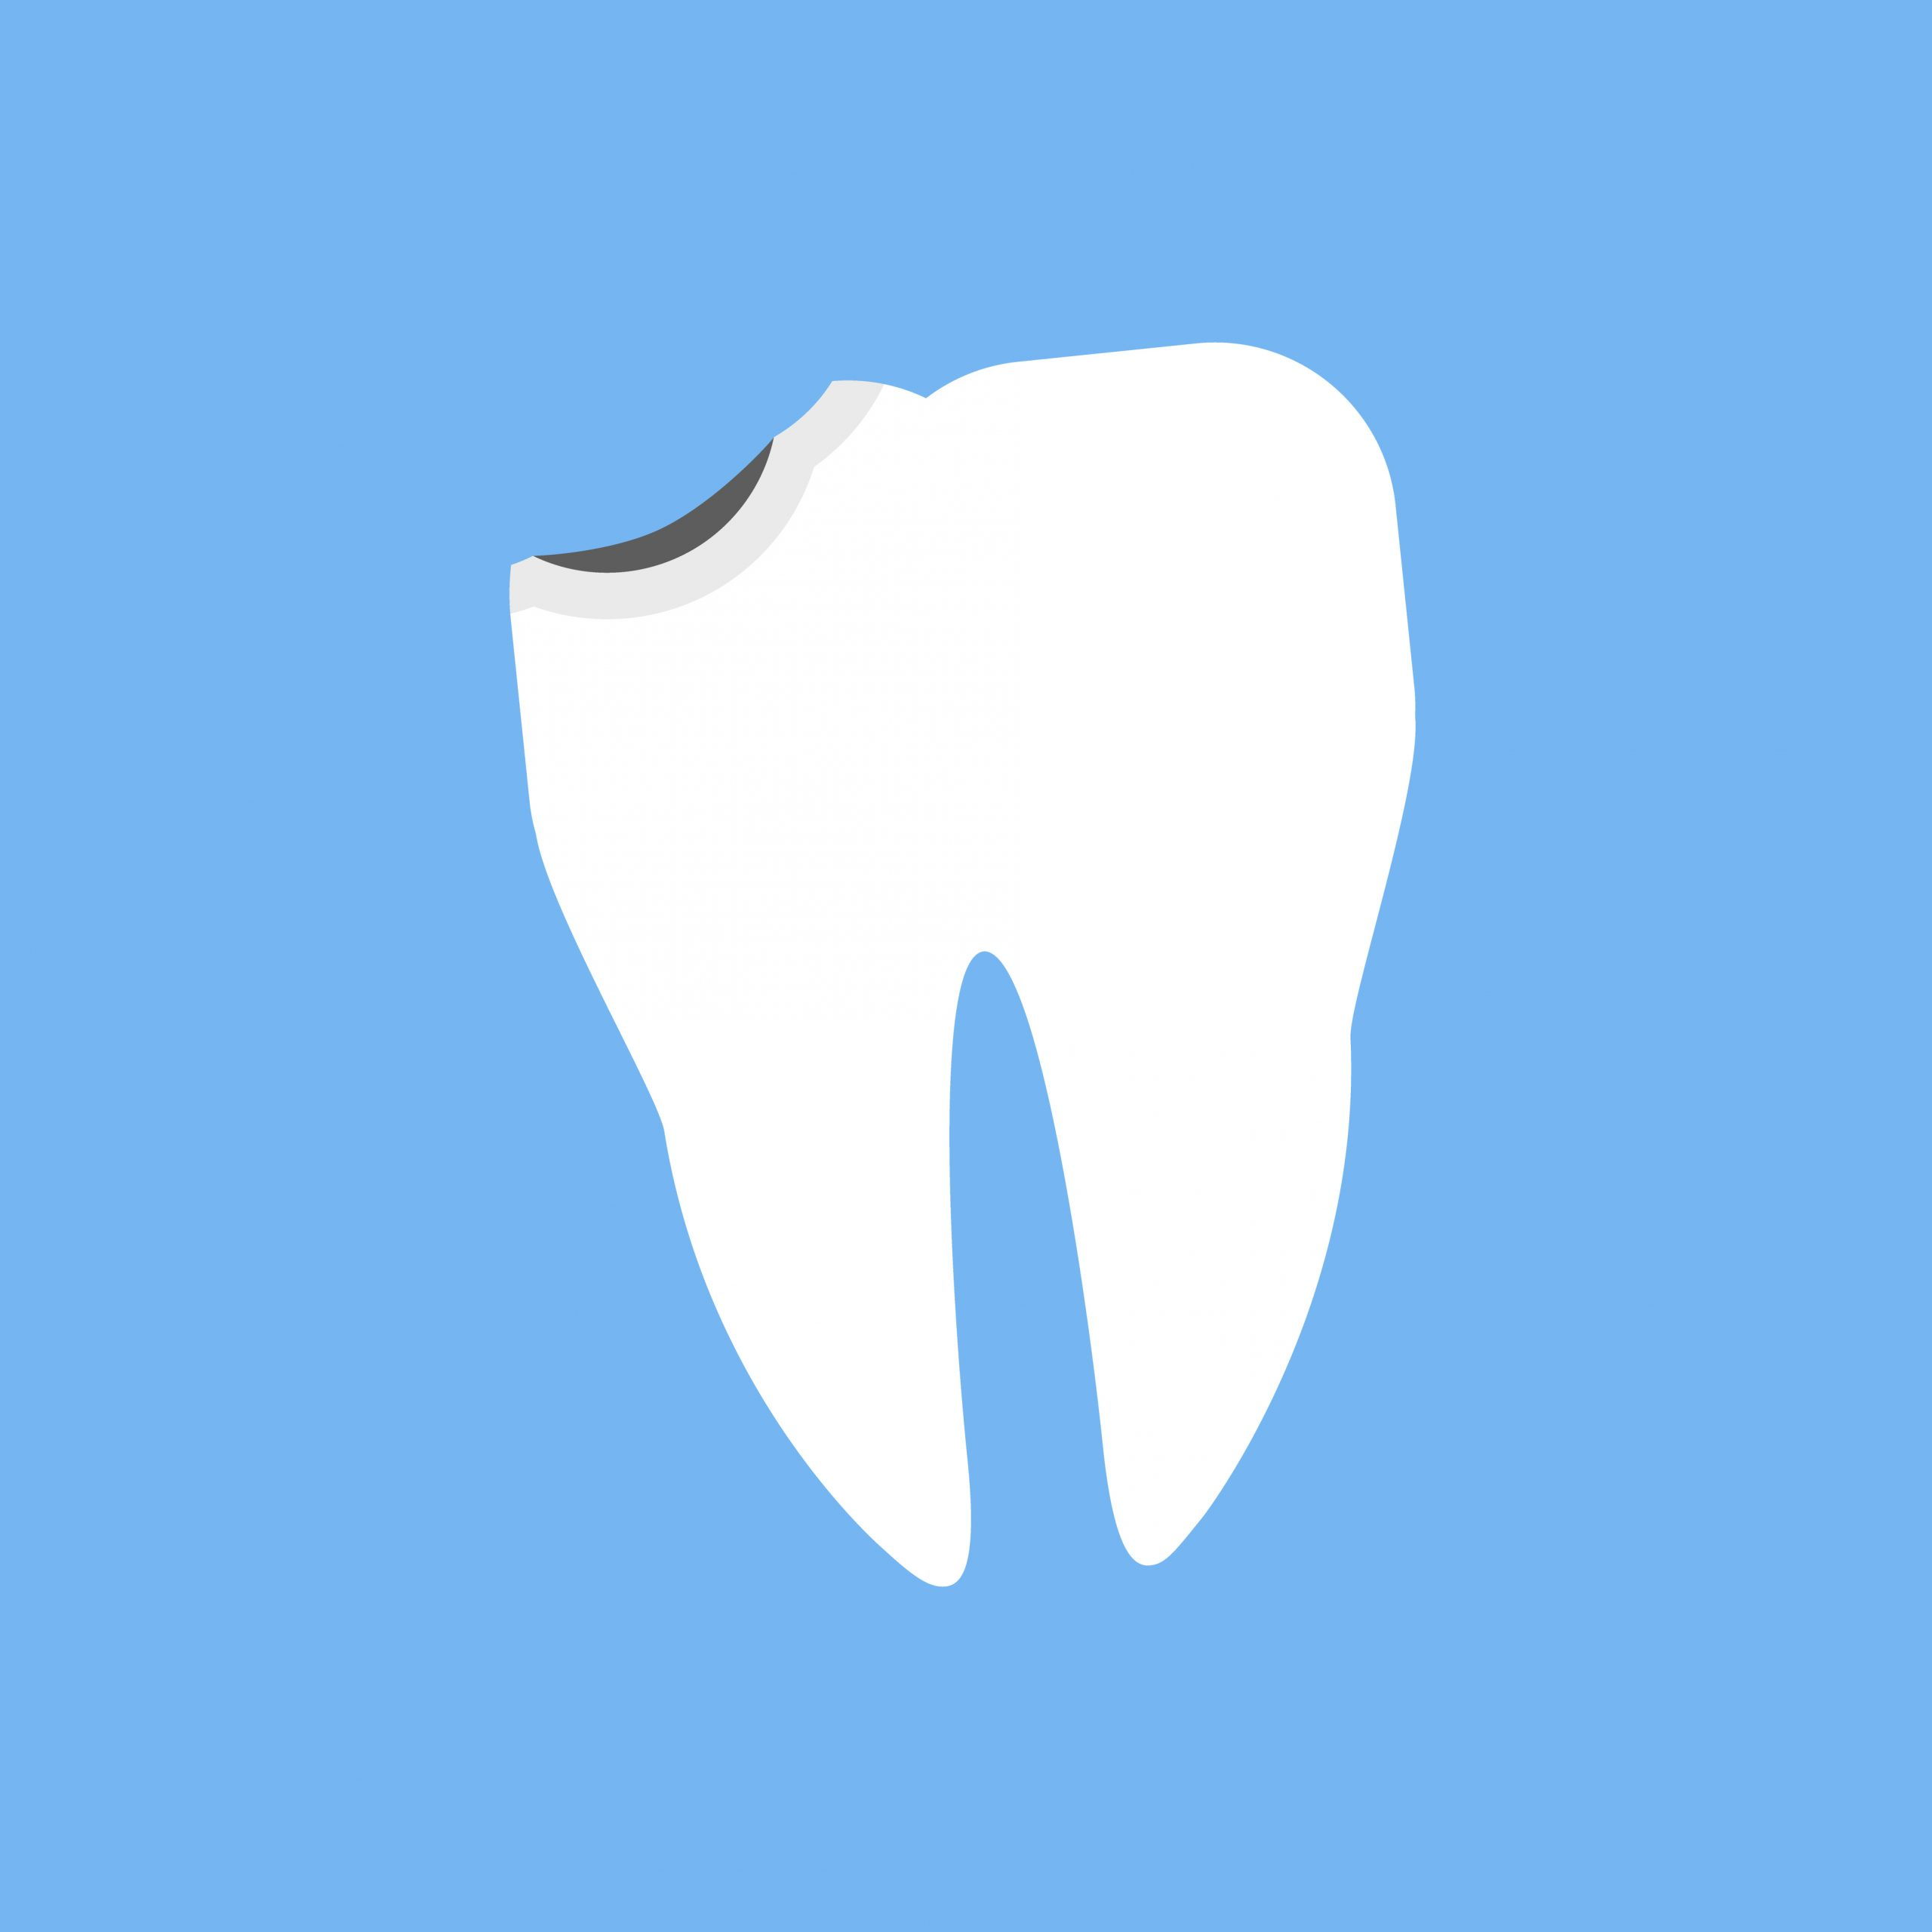 Broken white tooth design flat. Broken and dental, teeth and chipped tooth, bad teeth, cracked tooth, tooth and medicine oral, dent human, shape tooth, stomatology medical, crack tooth illustration